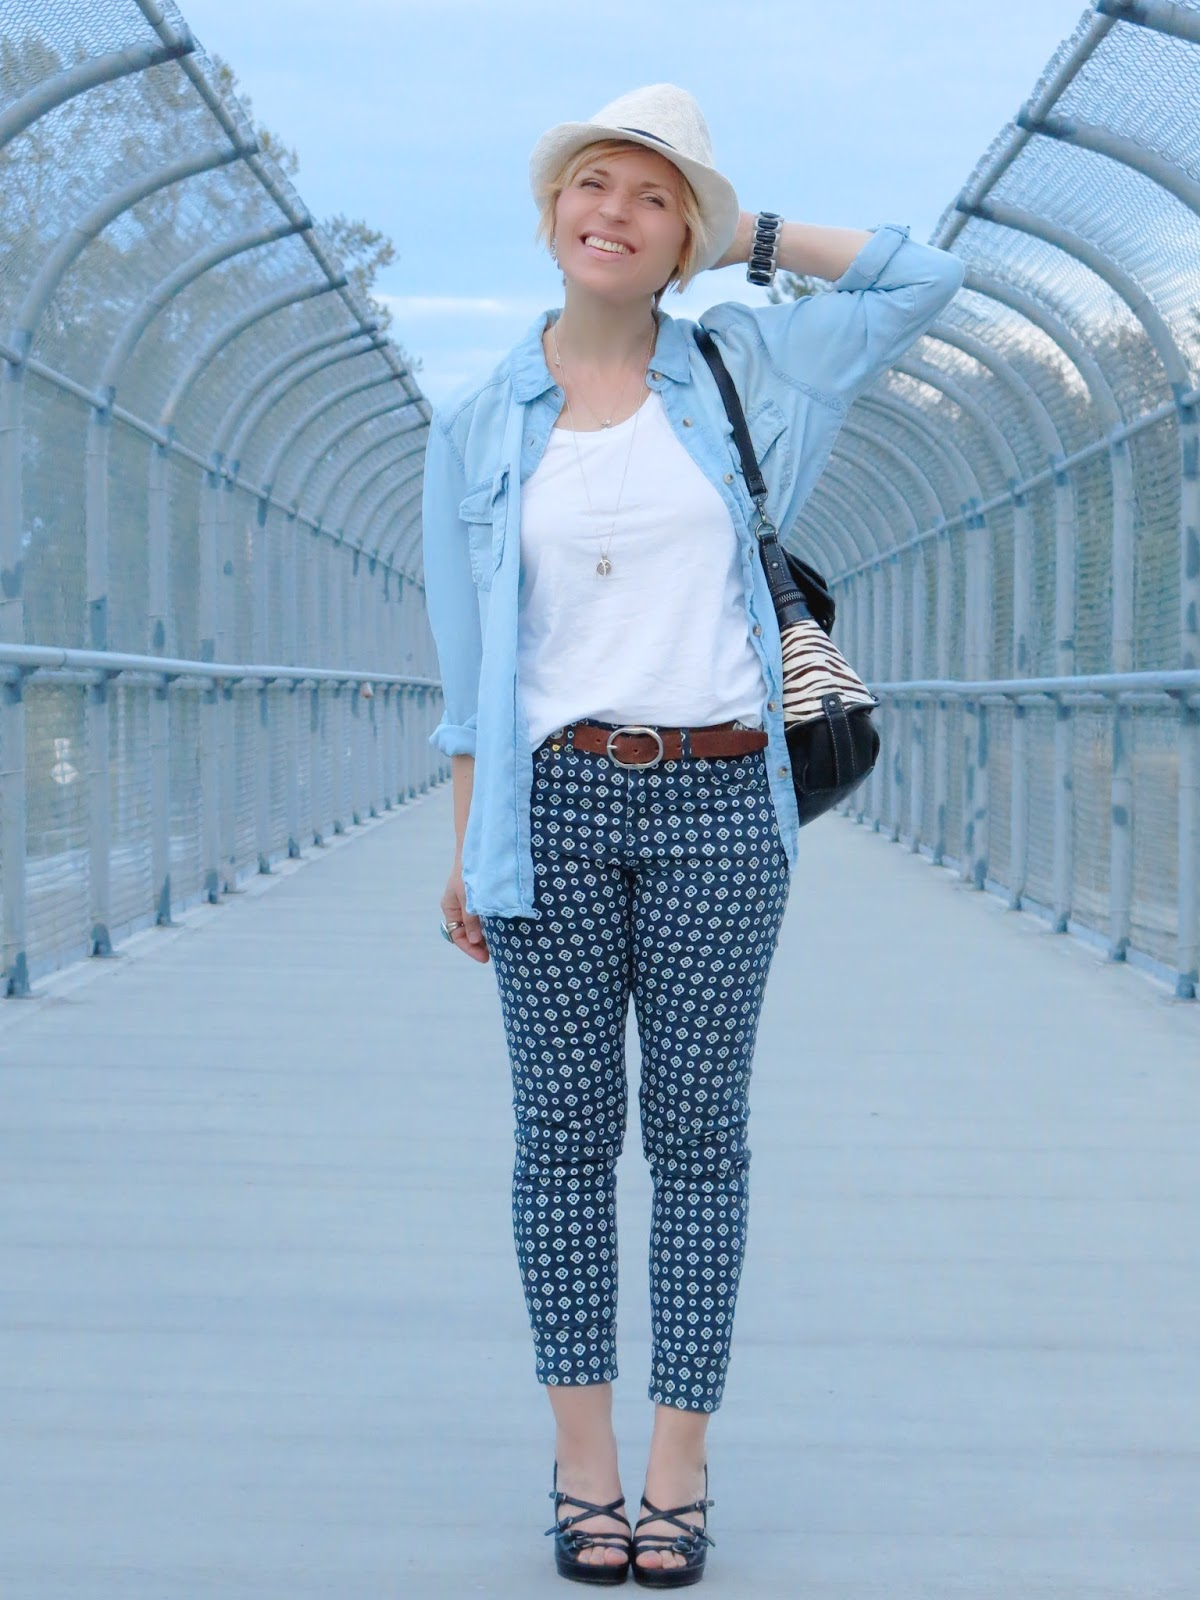 styling printed pants with a chambray shirt, strappy platform shoes, and a summer fedora